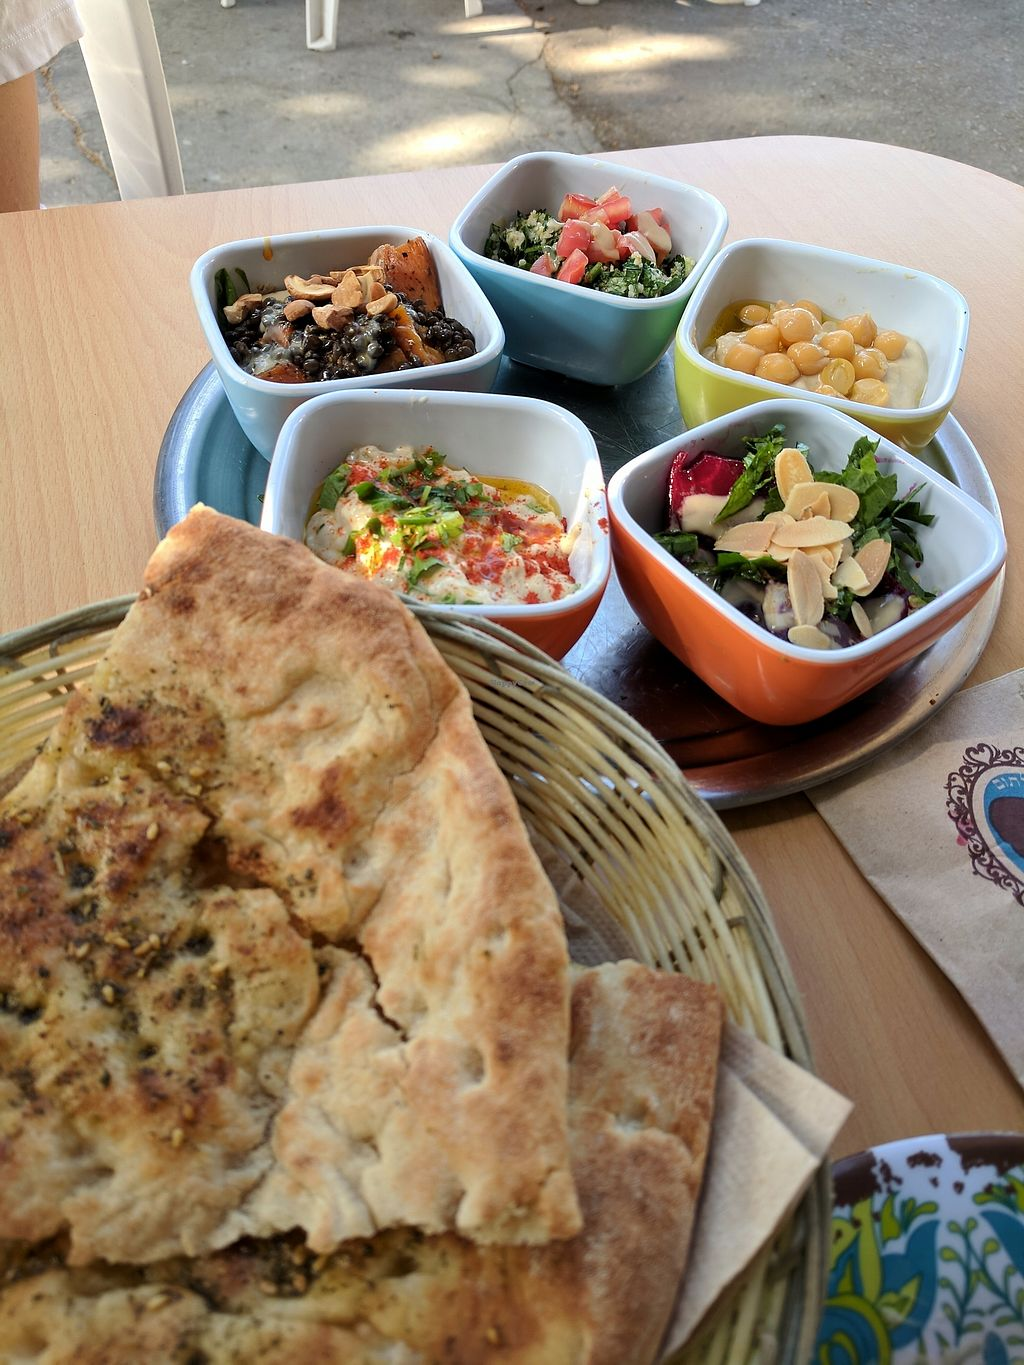 """Photo of Umm Kulthum  by <a href=""""/members/profile/eee135"""">eee135</a> <br/>5 salad tasting - hummus, bababganous, beet salad, tabbouleh, and sweet potato lentil salad with zatar bread  <br/> August 26, 2017  - <a href='/contact/abuse/image/75877/297396'>Report</a>"""